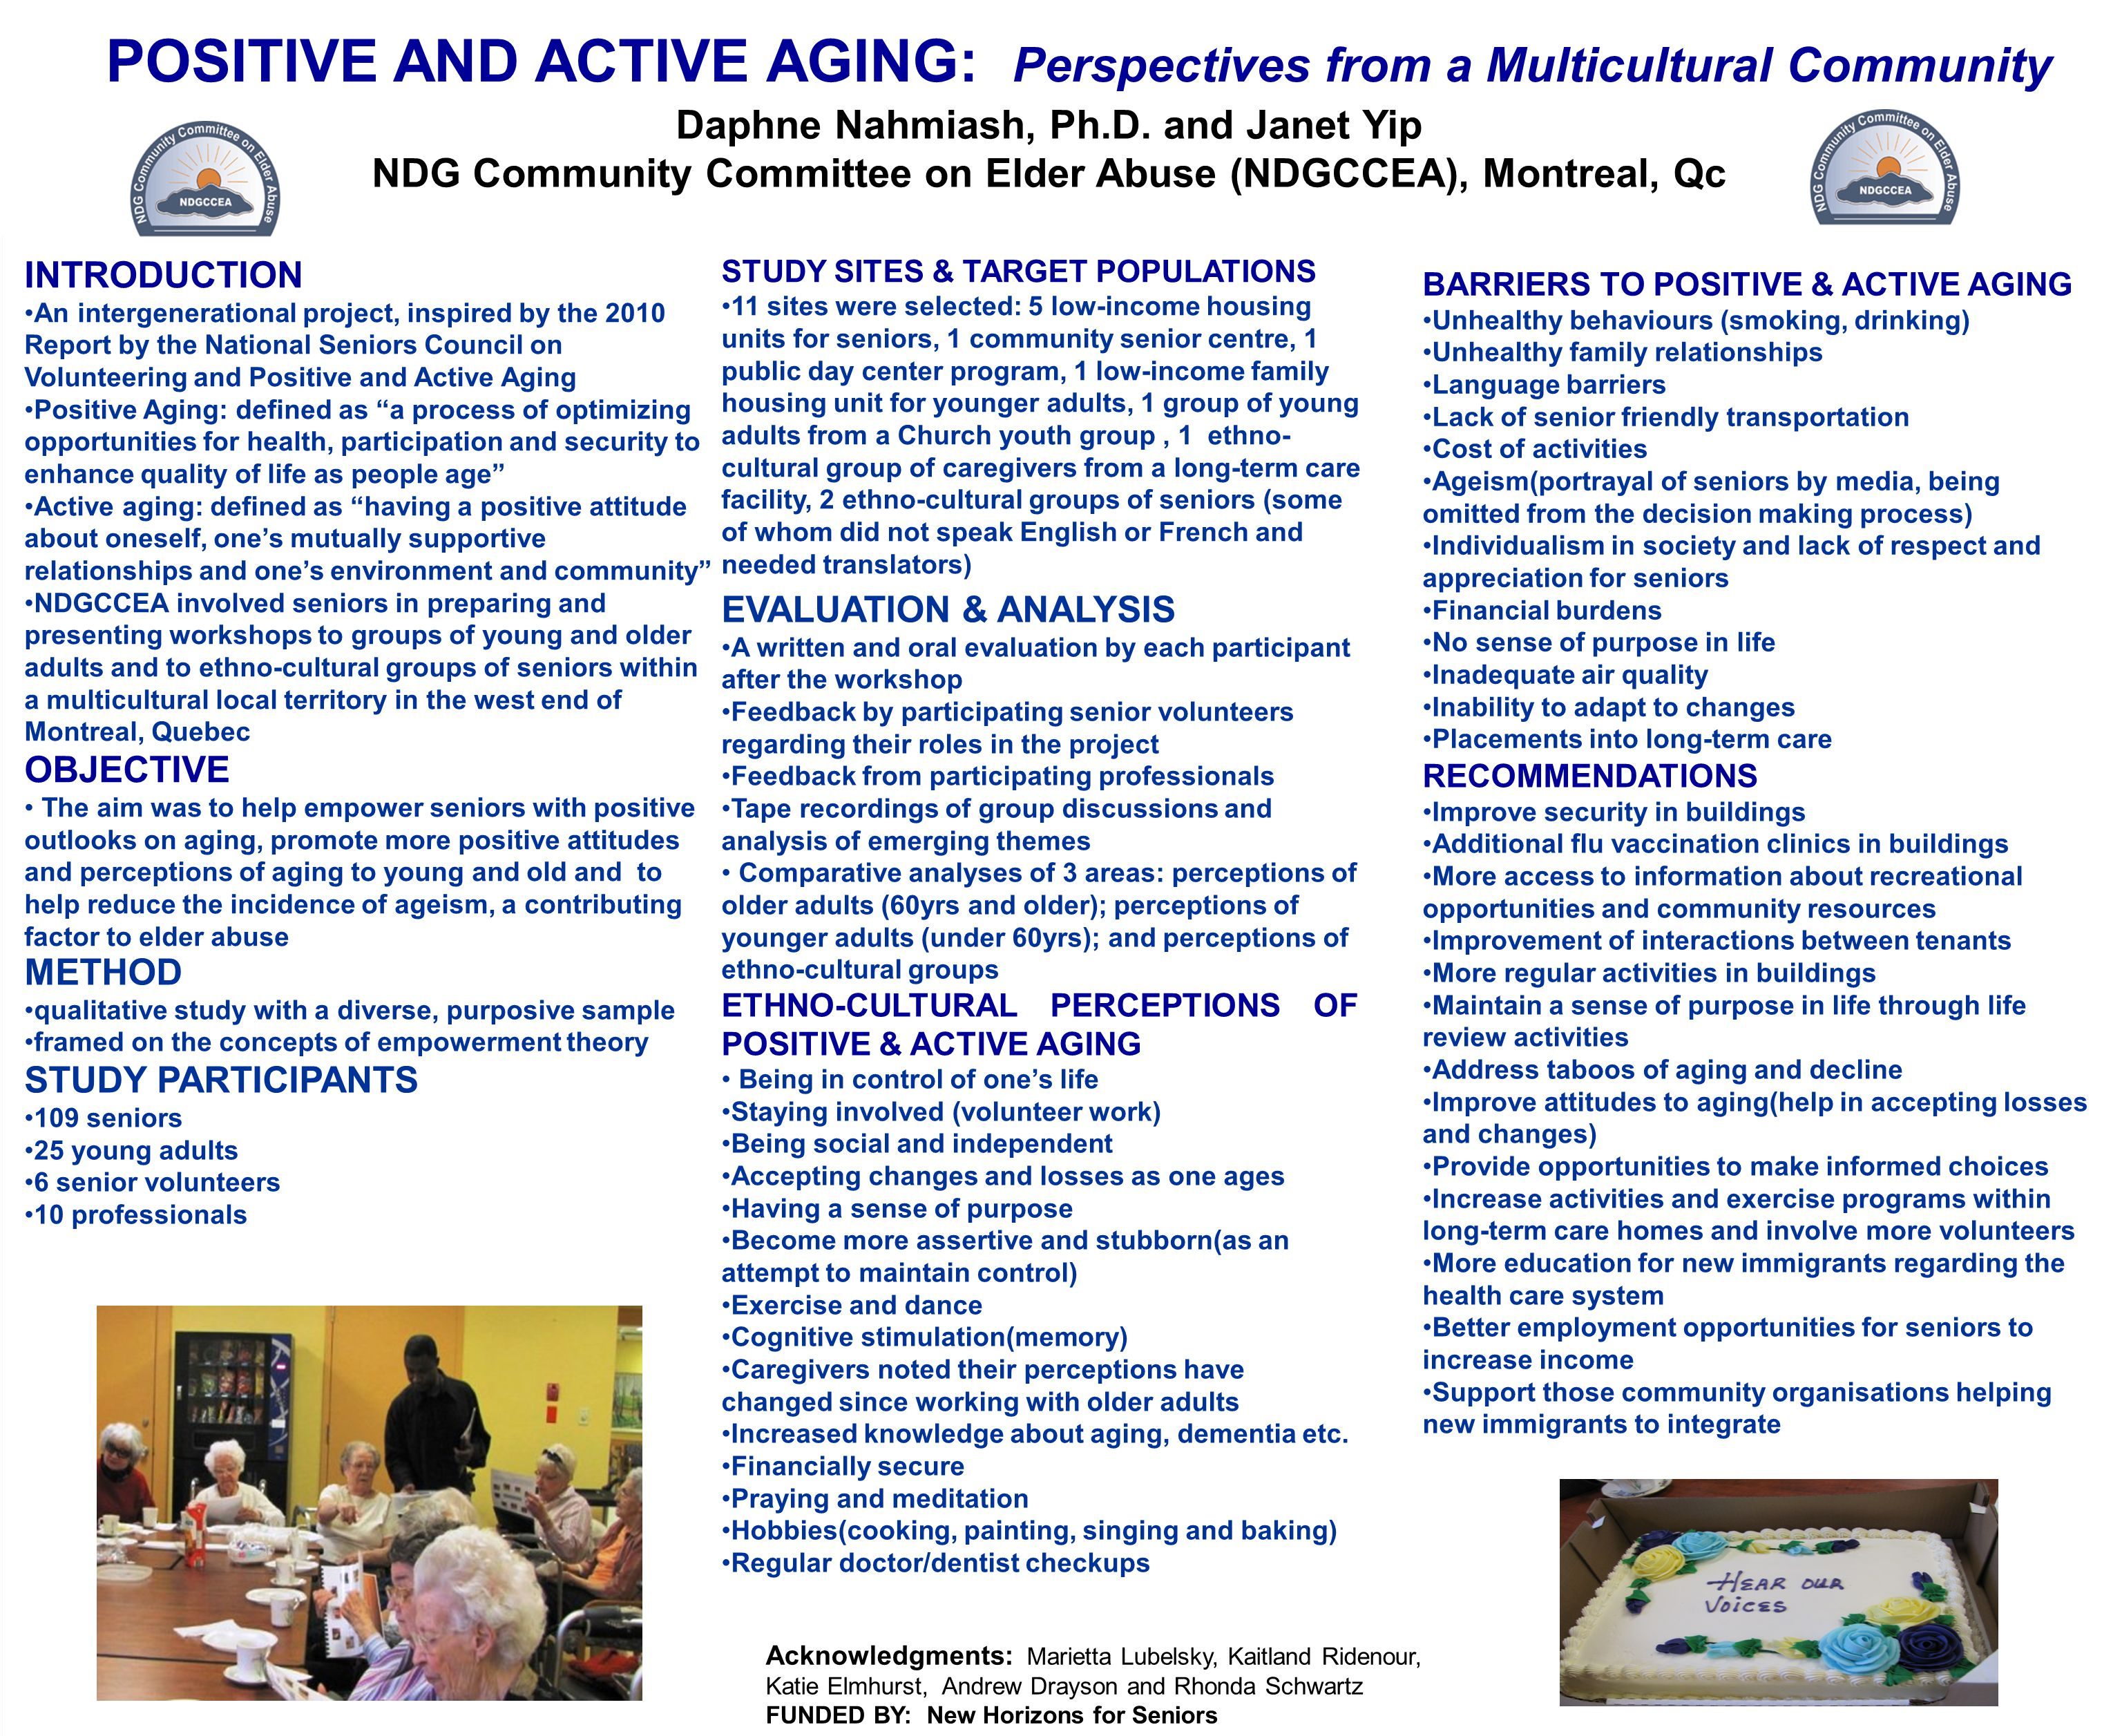 POSITIVE AND ACTIVE AGING: Perspectives from a Multicultural Community Acknowledgments: Marietta Lubelsky, Kaitland Ridenour, Katie Elmhurst, Andrew D